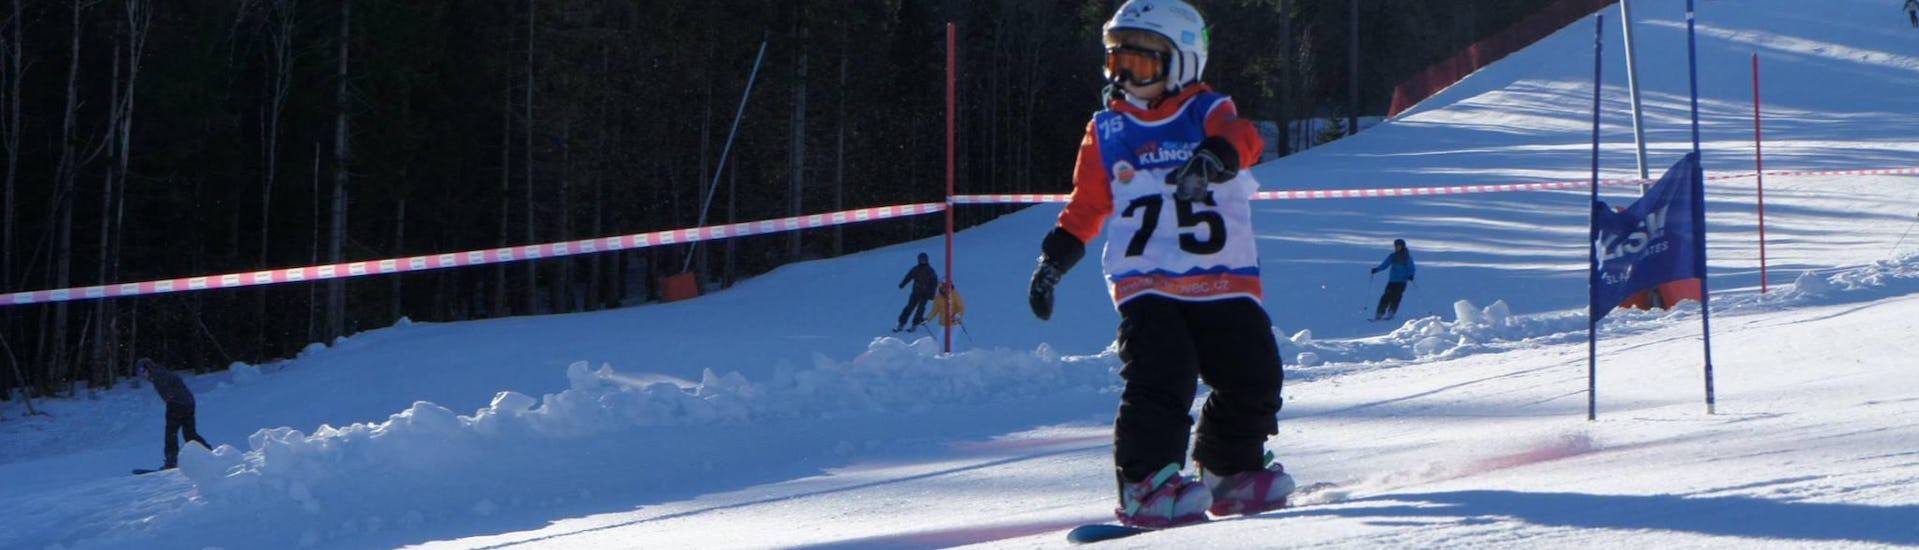 Snowboard Private Group for Kids & Adults - All Levels